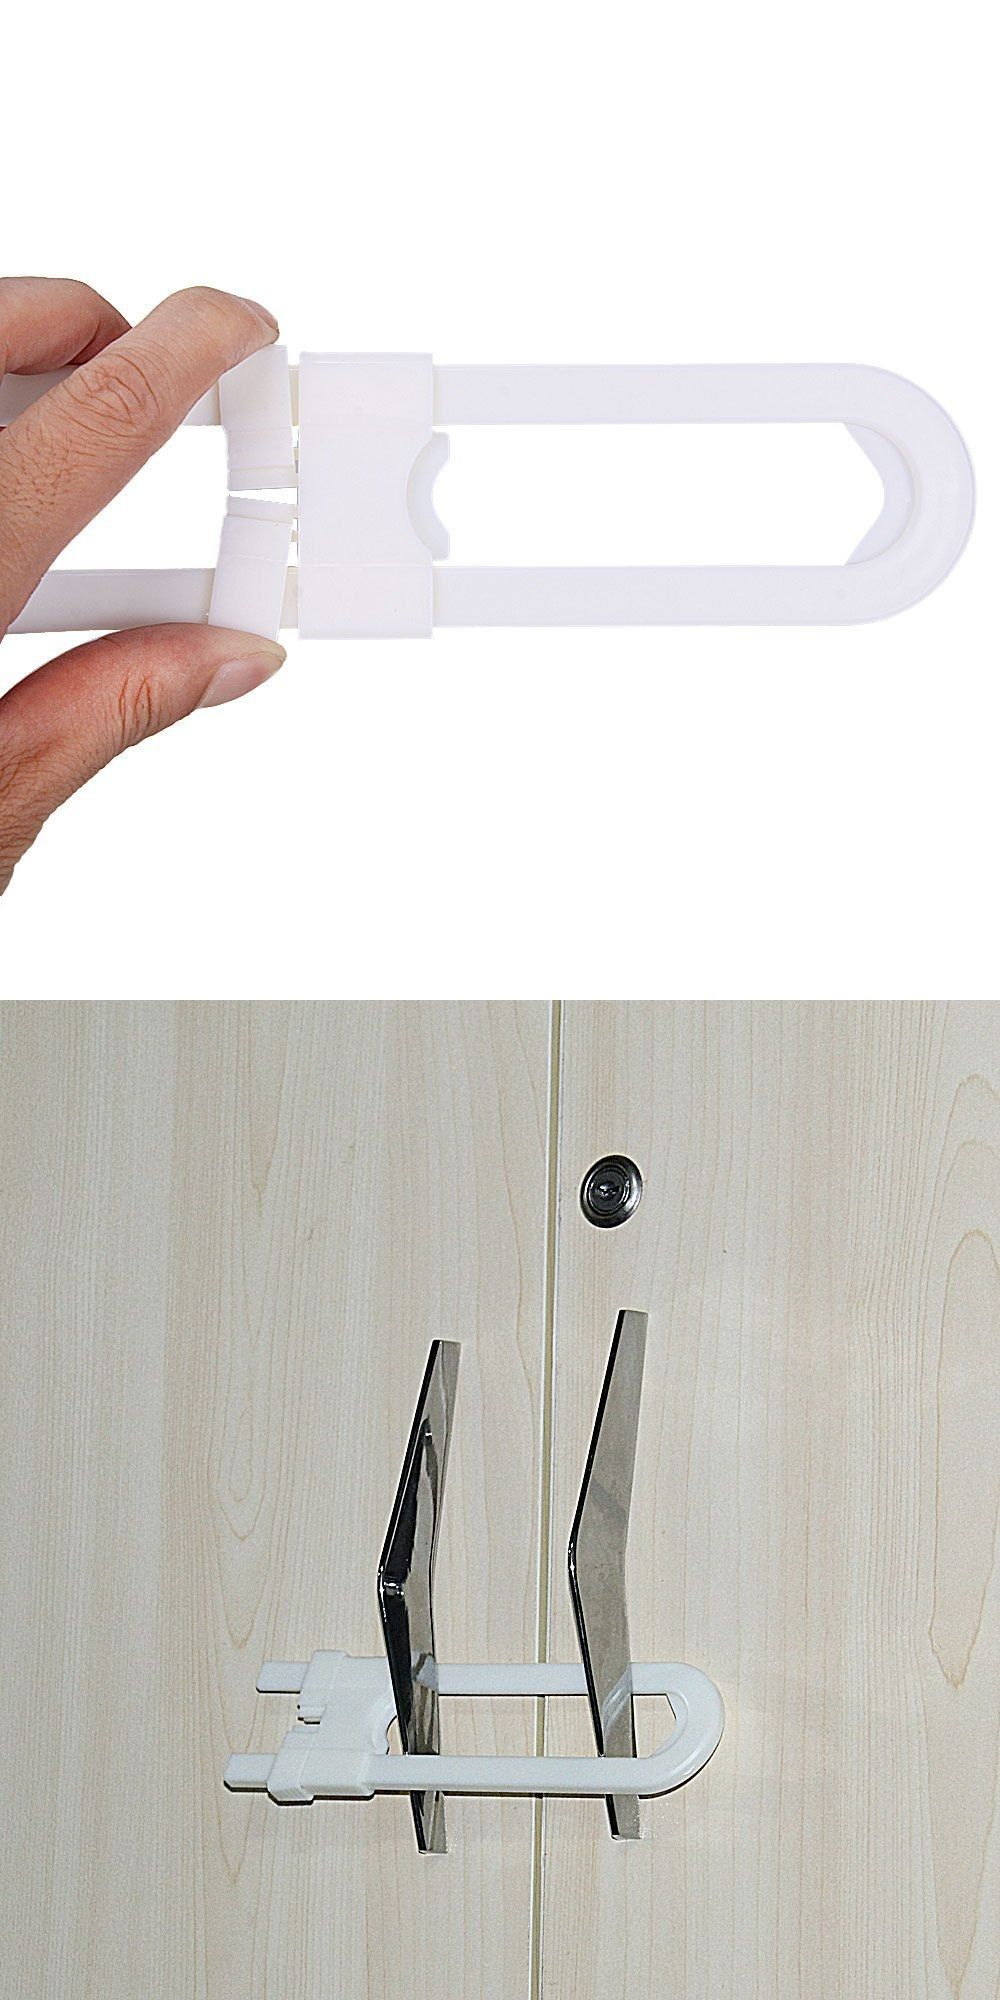 f19c266e868b Cabinet Door Drawers Refrigerator Toilet Safety Plastic Lock For Child Kid  Baby safety 1pcs